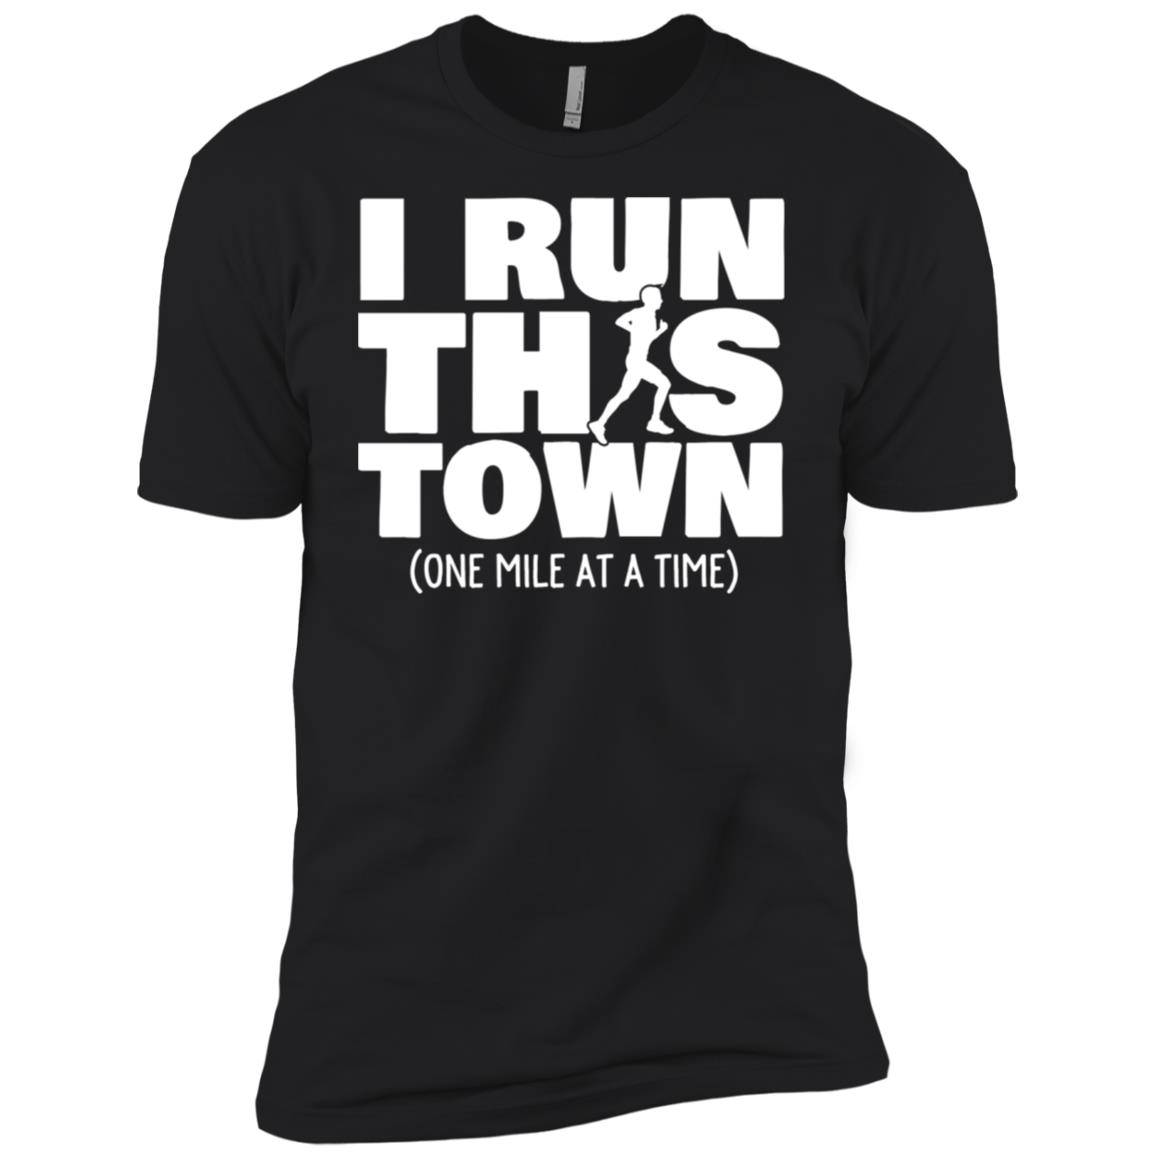 One Mile At A Time Male Runner Men Short Sleeve T-Shirt